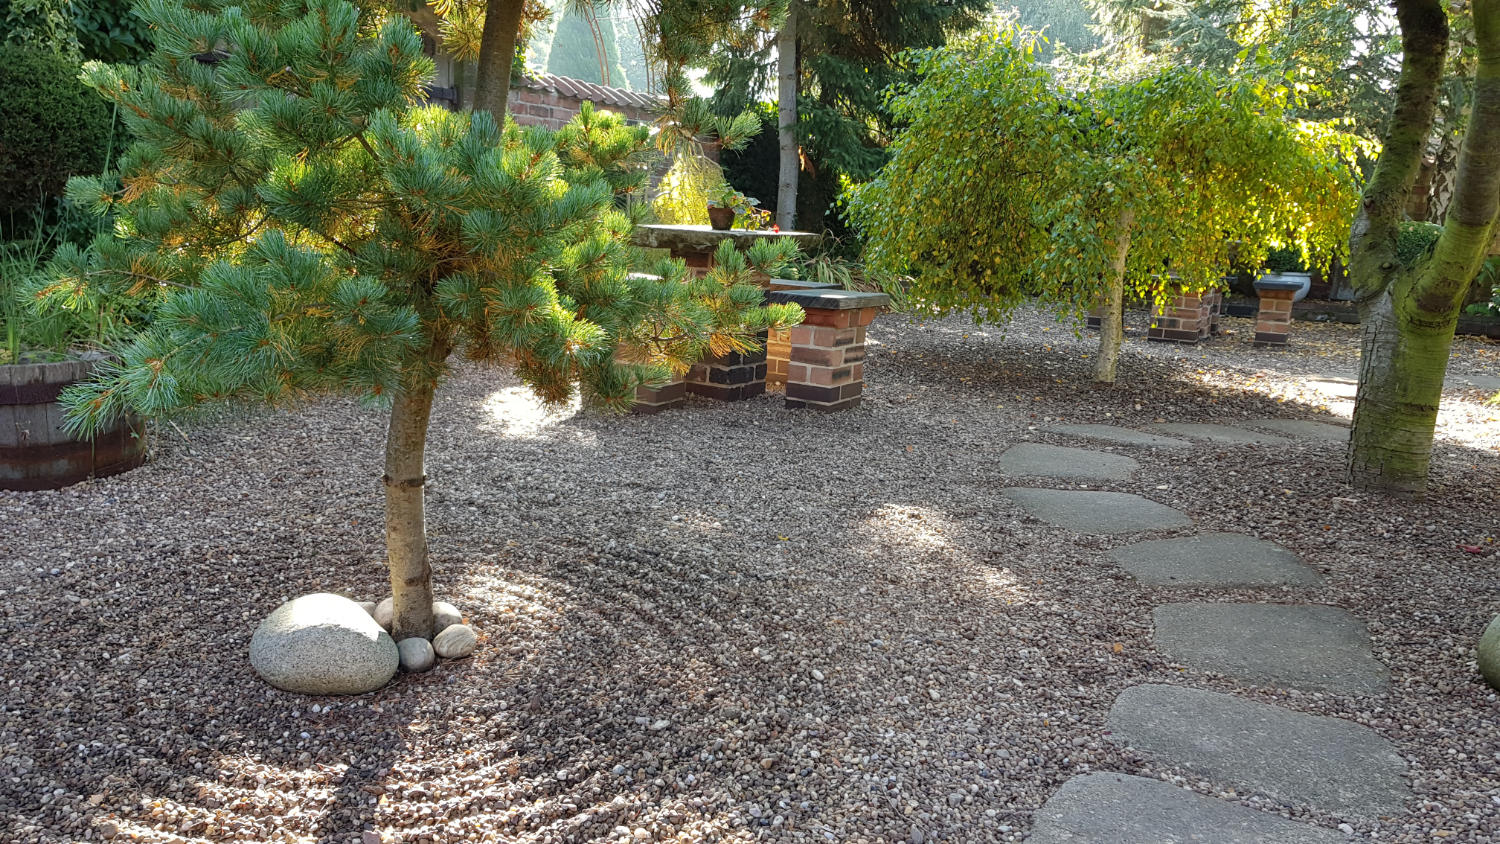 The Japanese-style tea garden with raked gravel around the trunk of a tree.